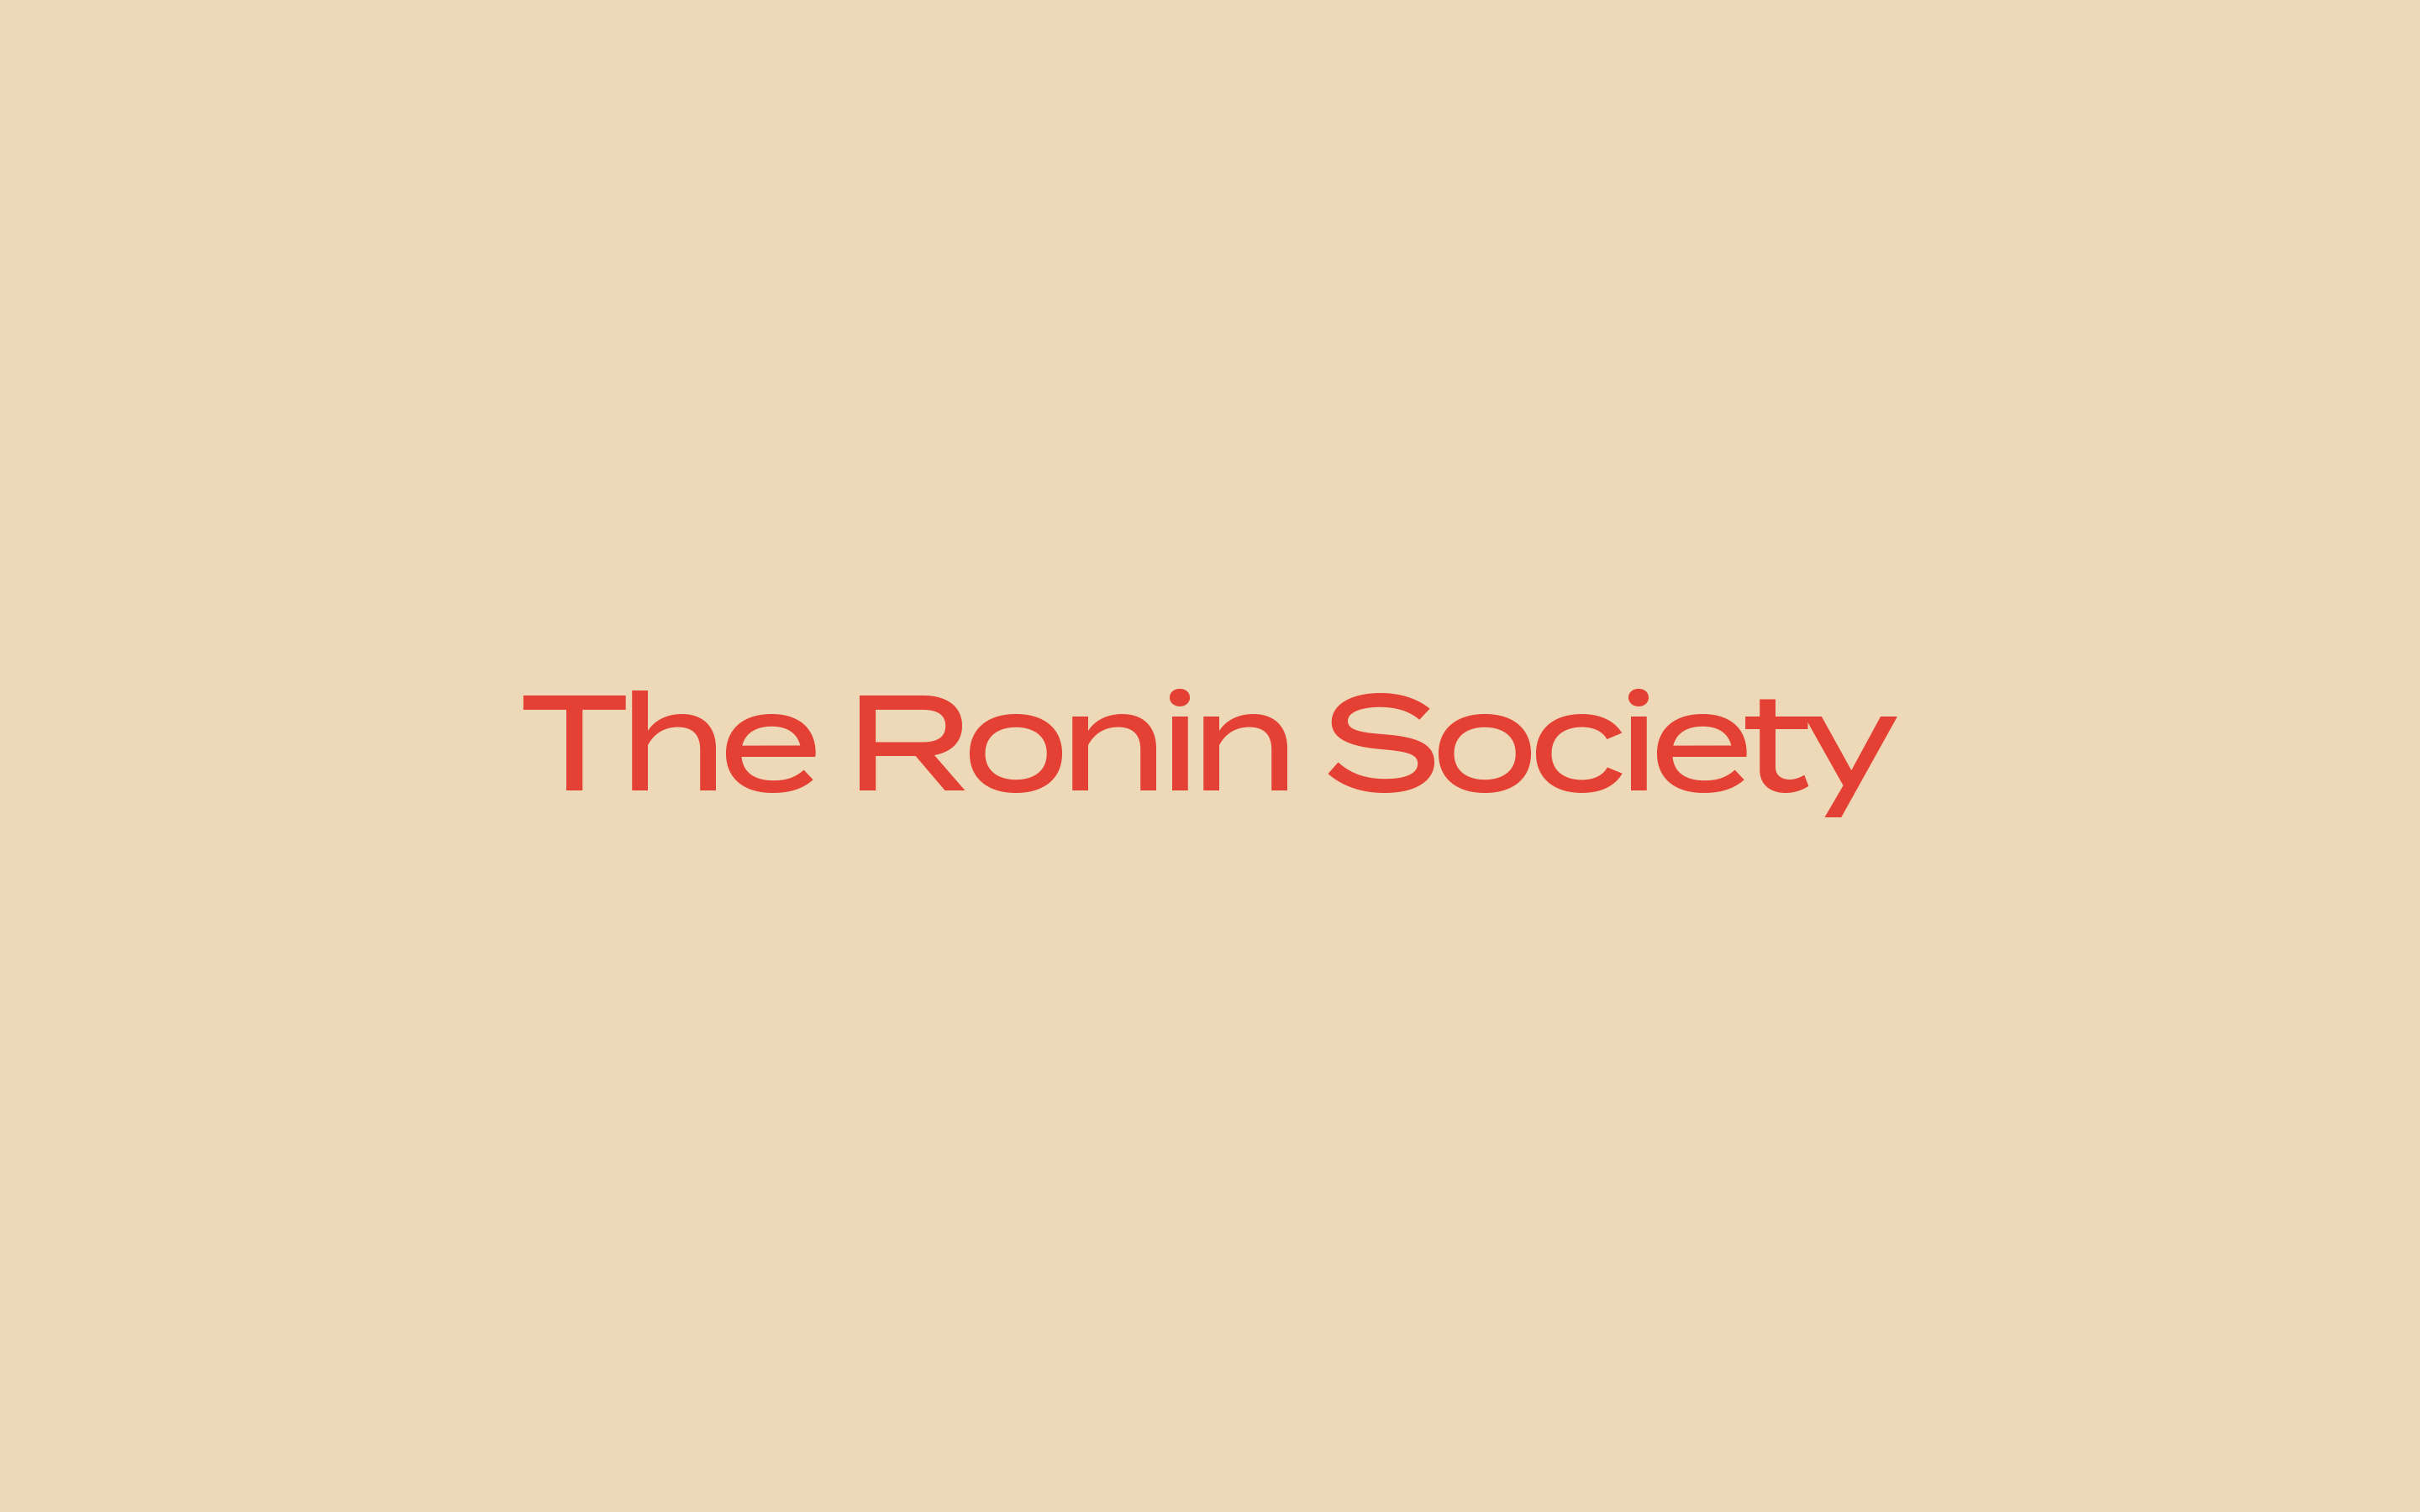 Vedros_RoninSociety_Wordmark2880x1800